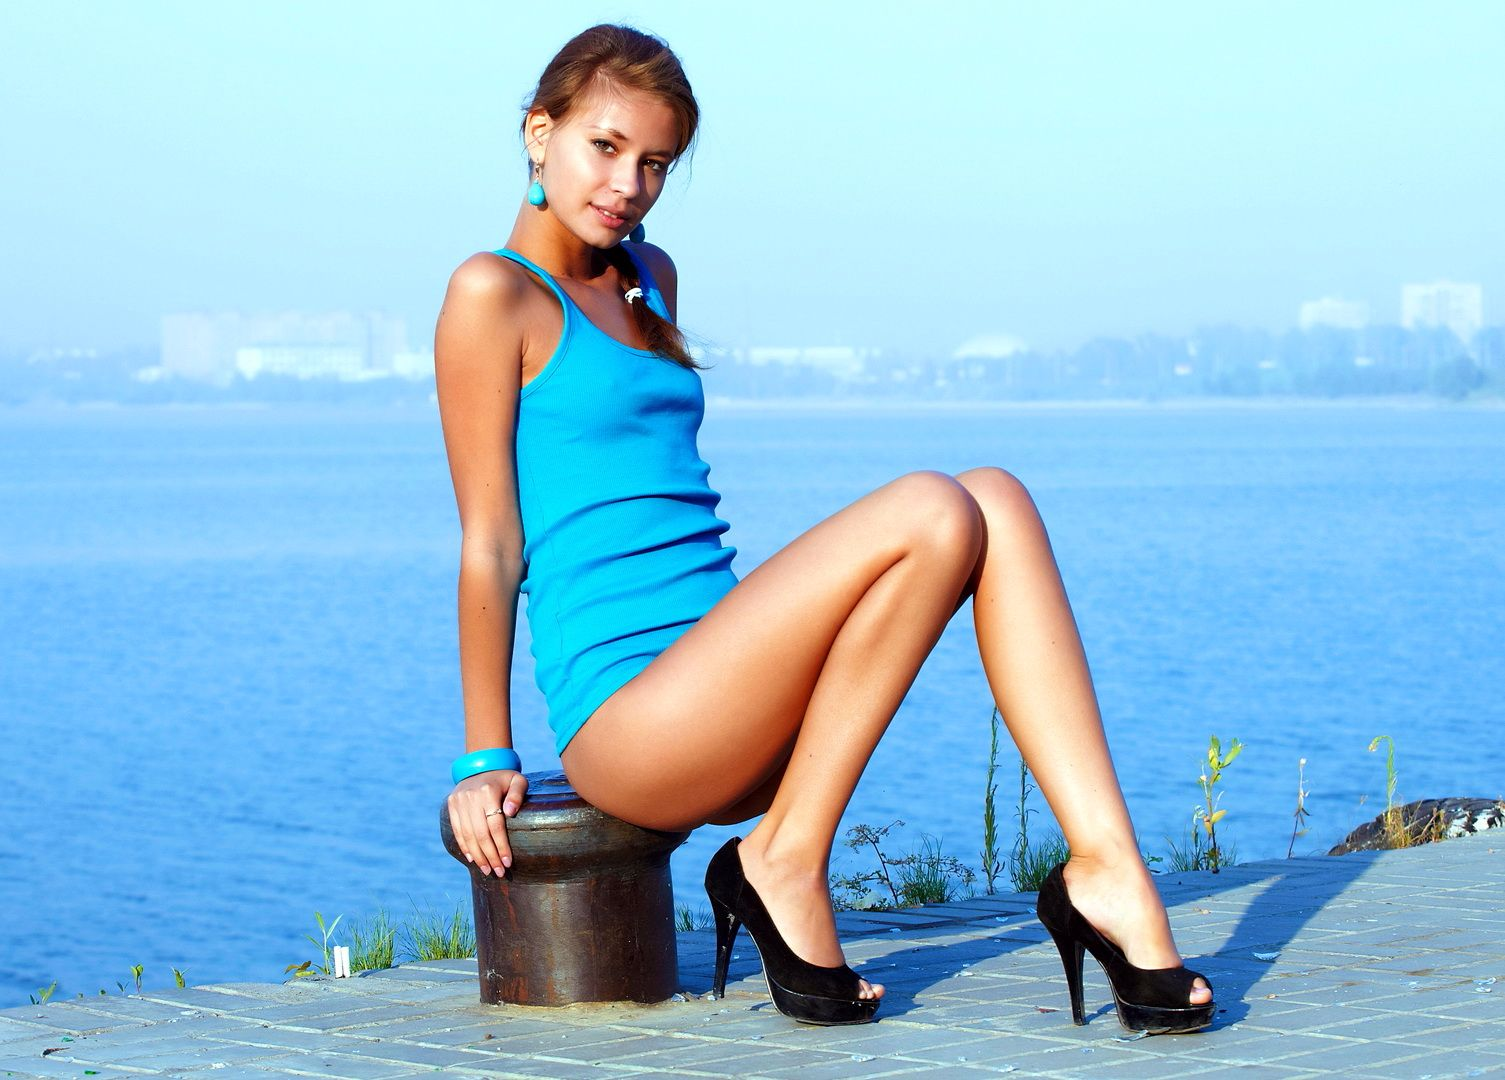 upskirt elite independent escort